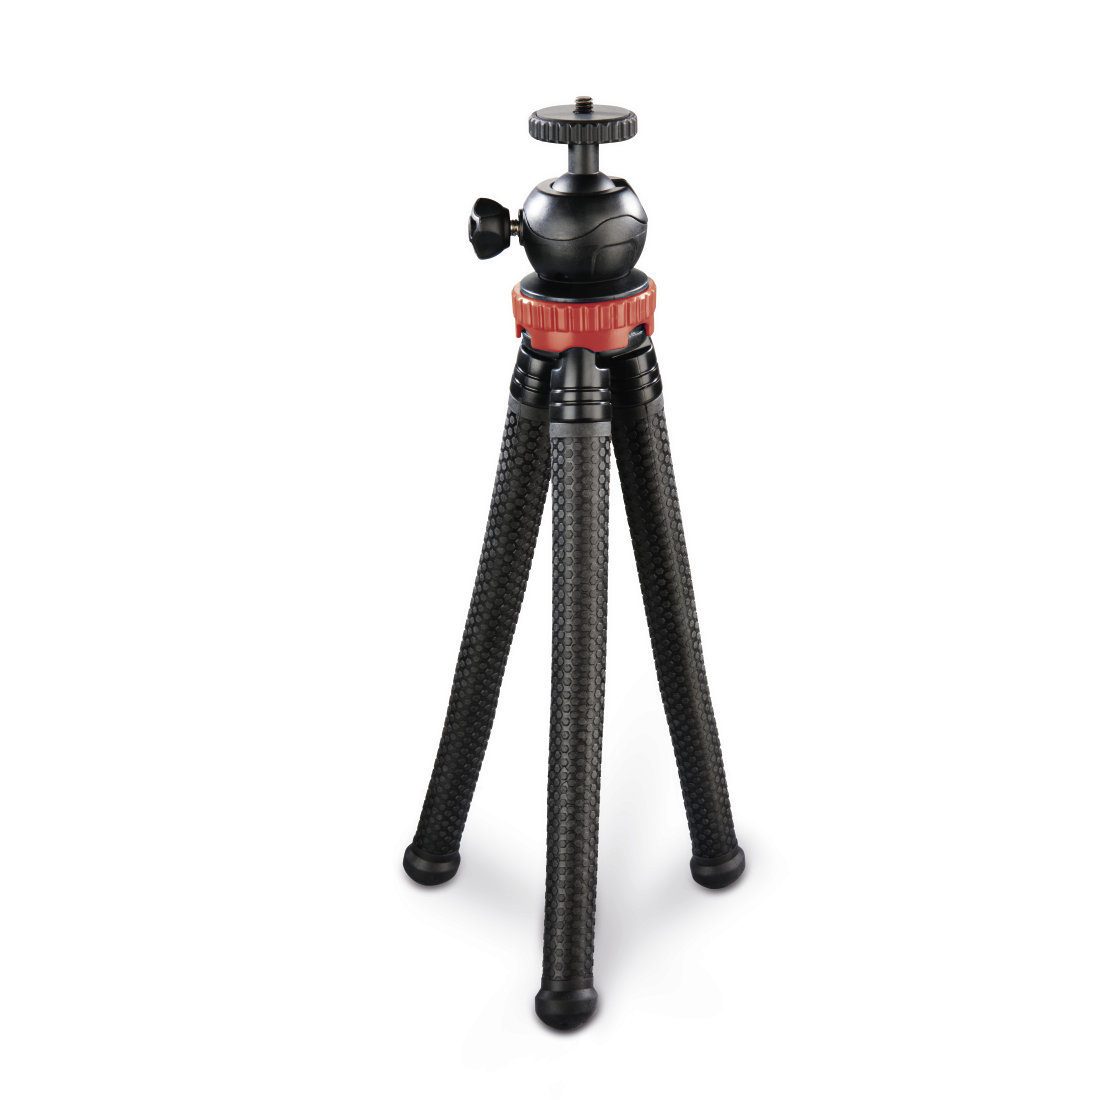 "abx2 High-Res Image 2 - Hama, ""FlexPro"" Tripod for Smartphone, GoPro and Photo Cameras, 27 cm, red"